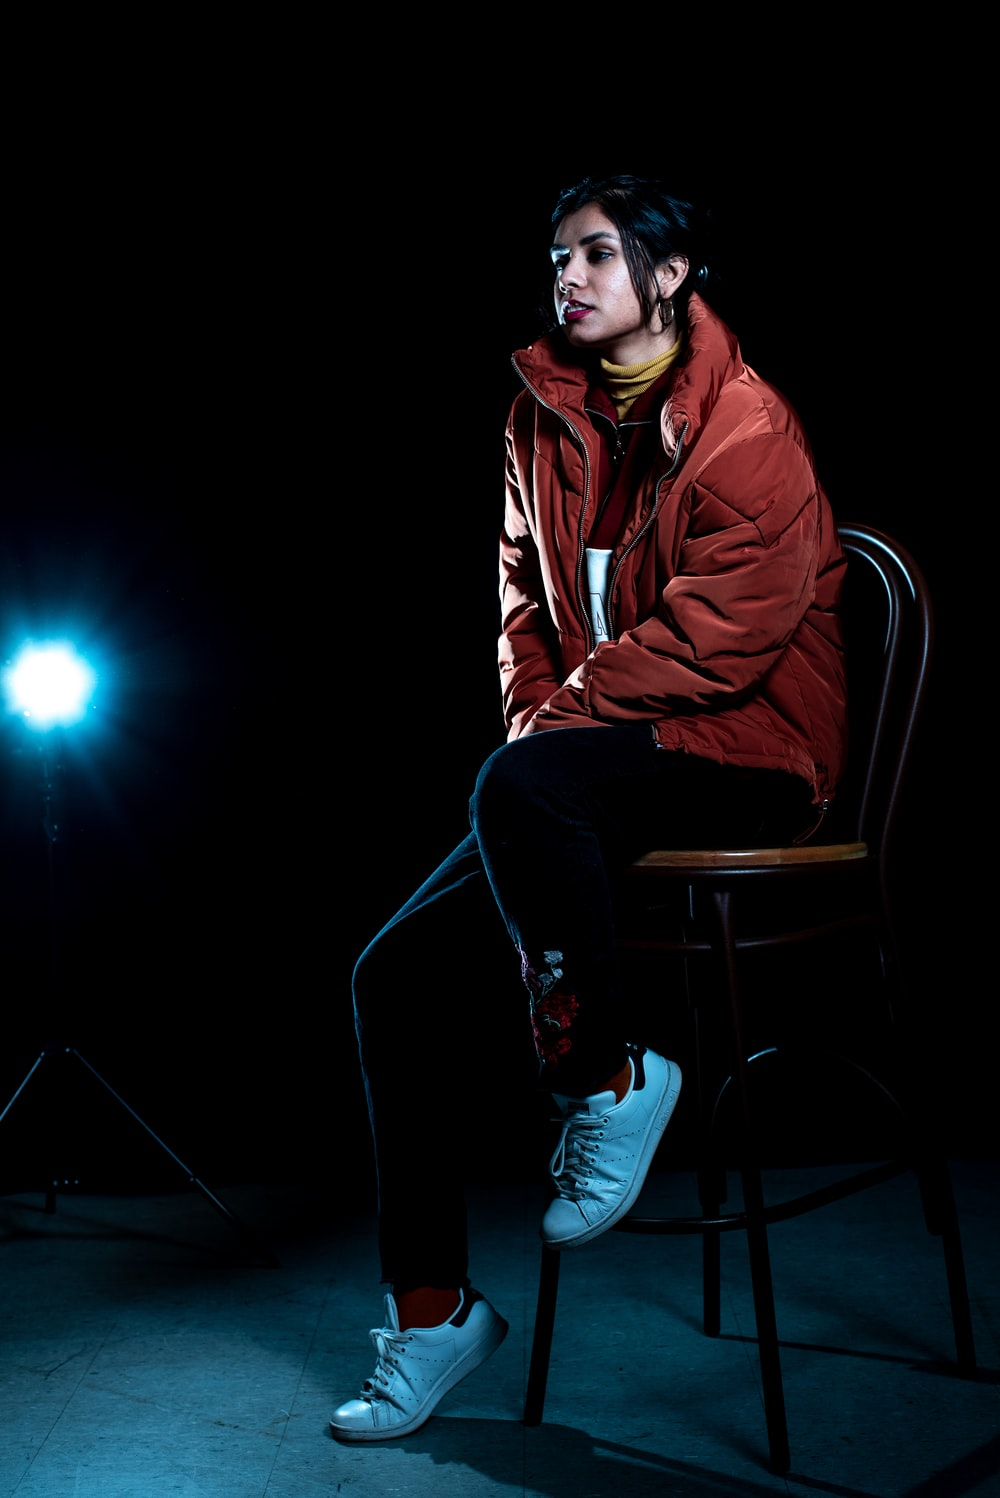 man in red jacket sitting on chair